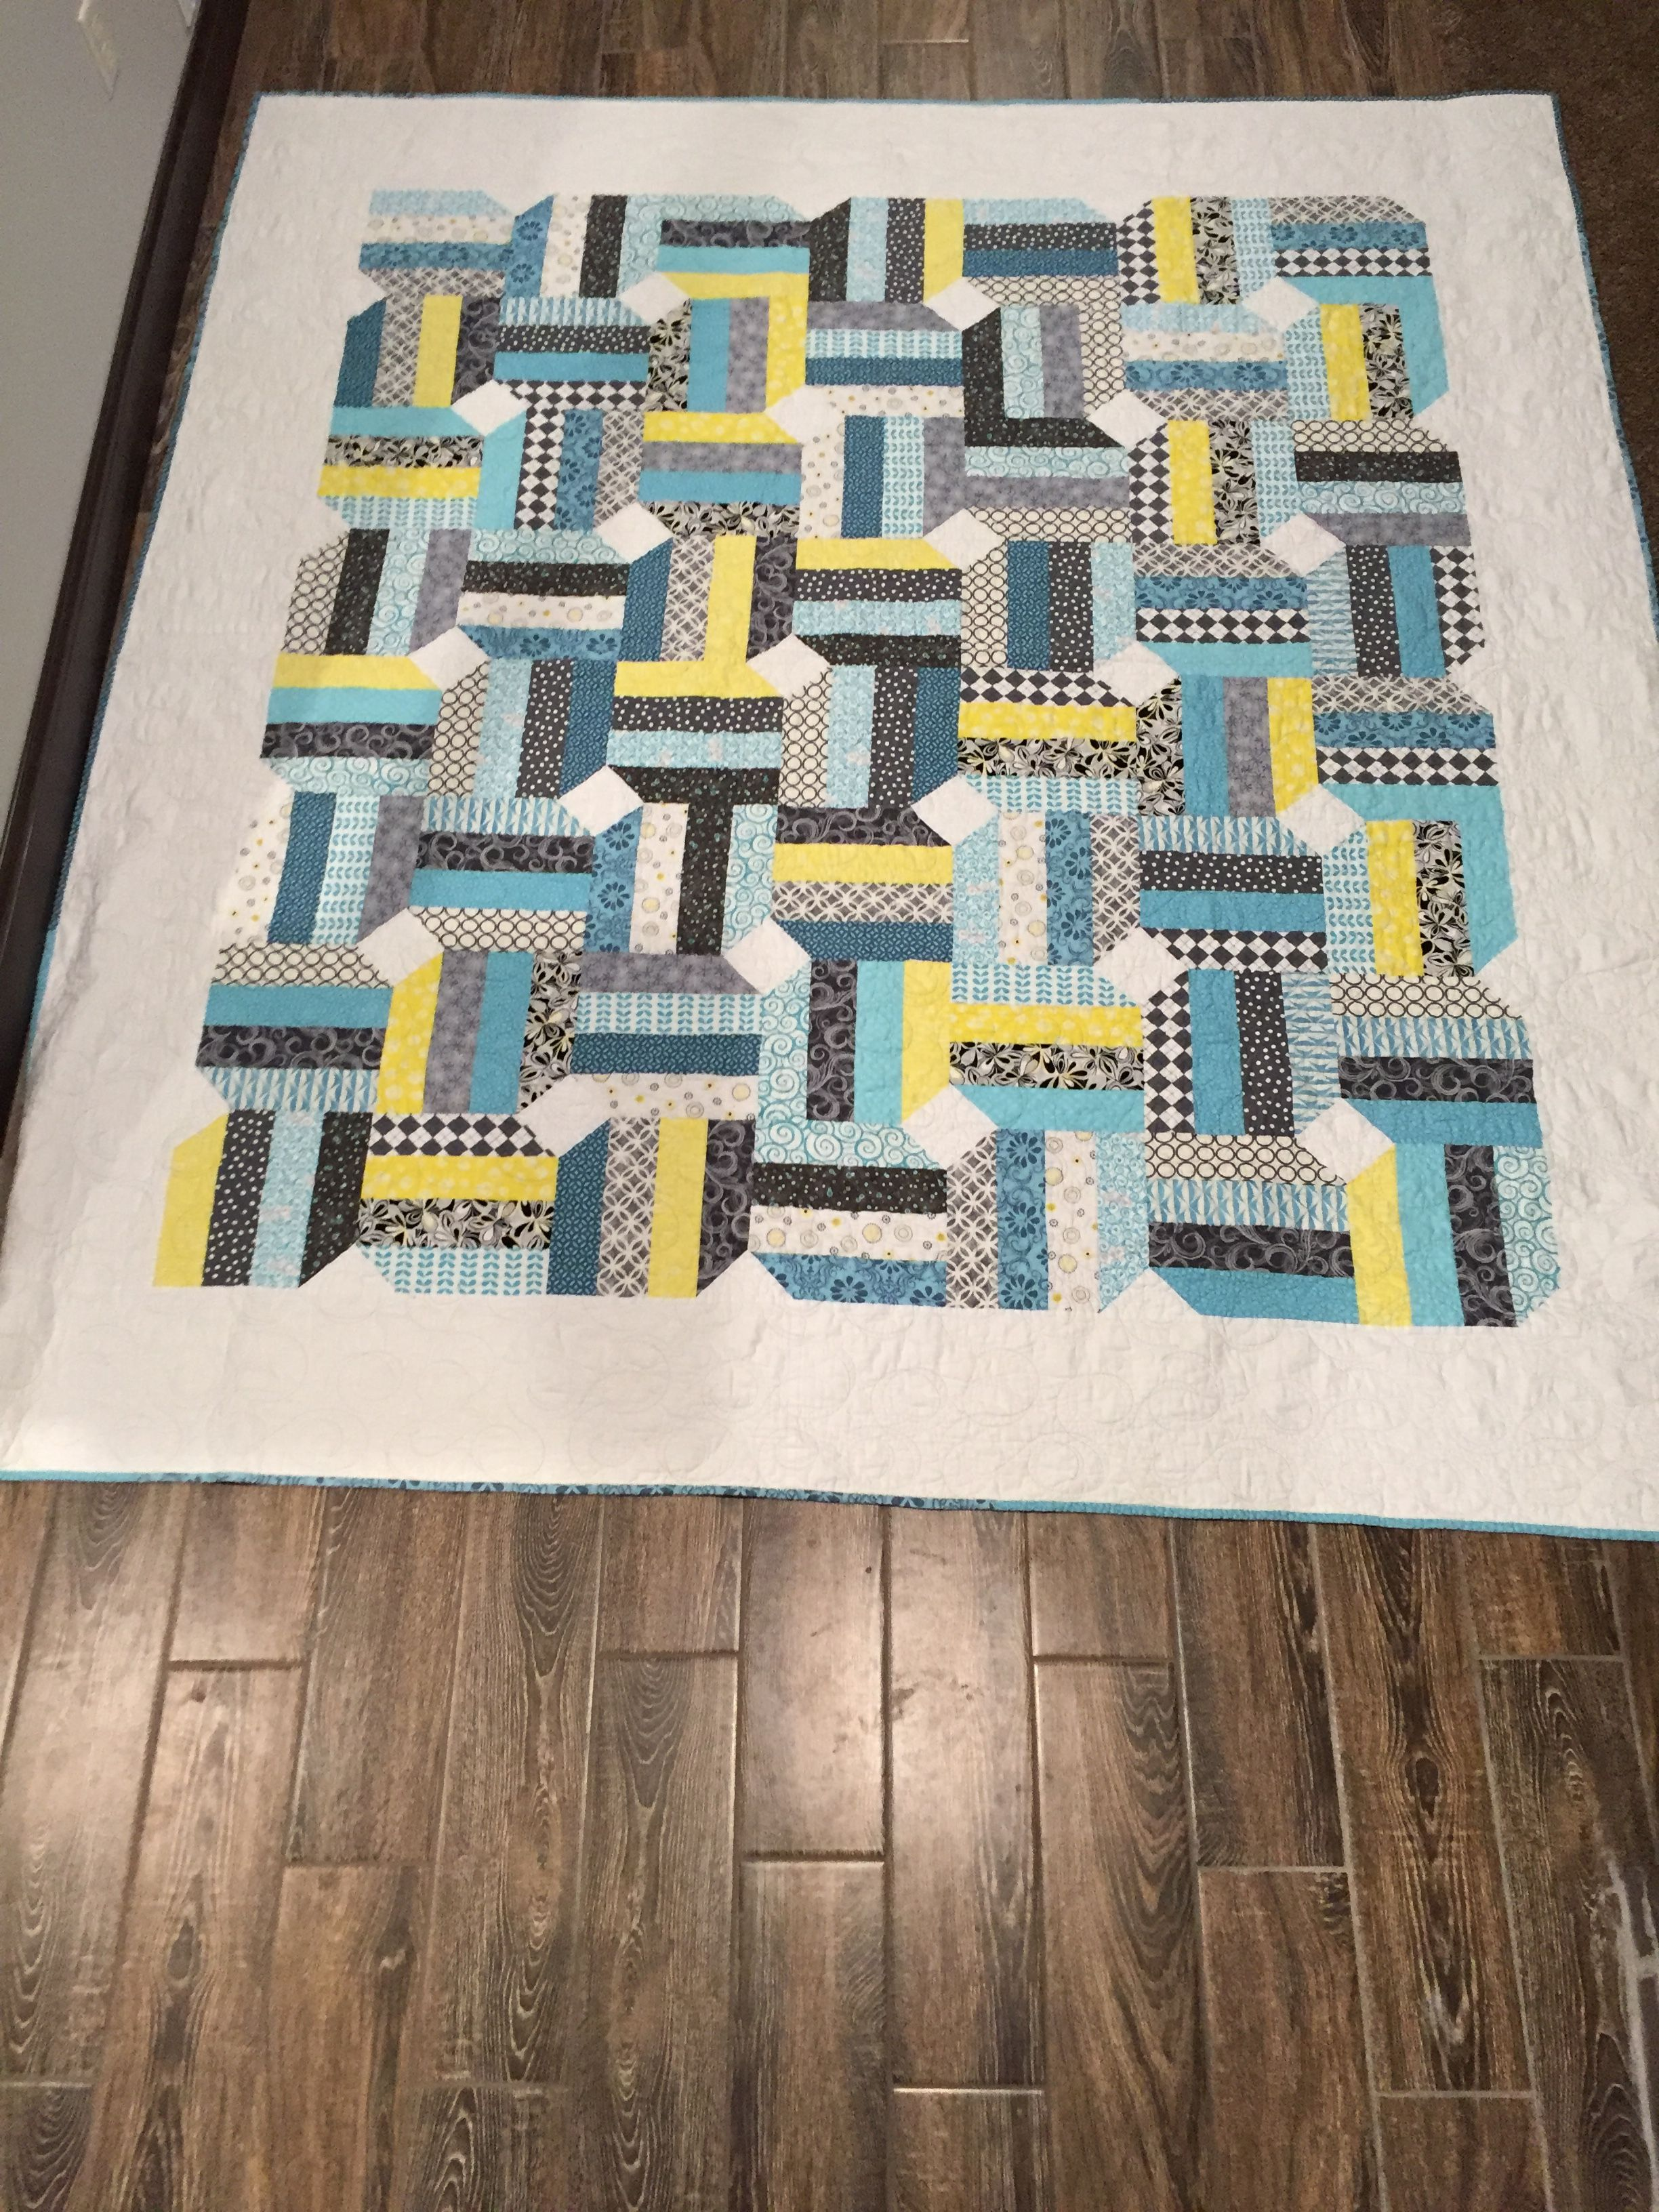 "Developed my own pattern for a rail fence quilt using 3"" strips and snowballing the corners. Great way to eliminate waste. 1/4 yard equals three strips. Given to Annalisa; she had requested this pattern with teals, greys and pop of yellow. (Patrick claims as his. LOL) 91"" X 104"". Given Christmas of 2013."